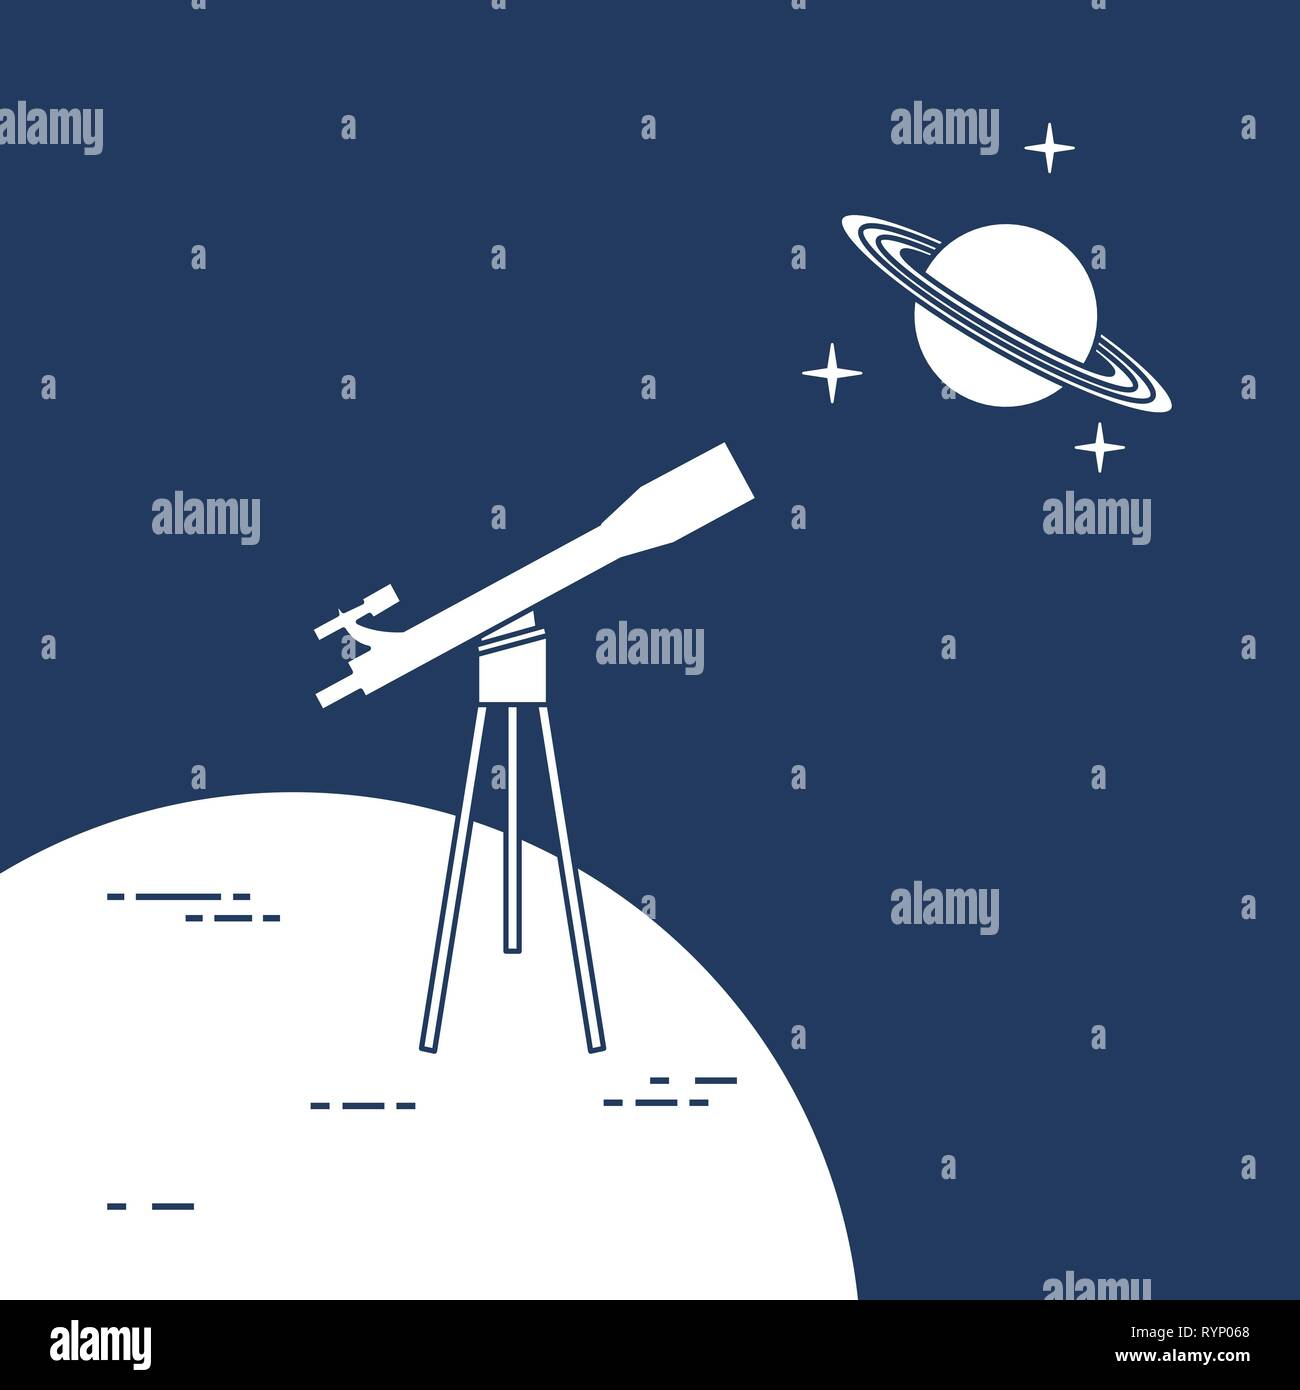 Vector Illustration With Telescope Planet Saturn With Ring System Astronomy Design For Banner Poster Textile Print Stock Vector Image Art Alamy